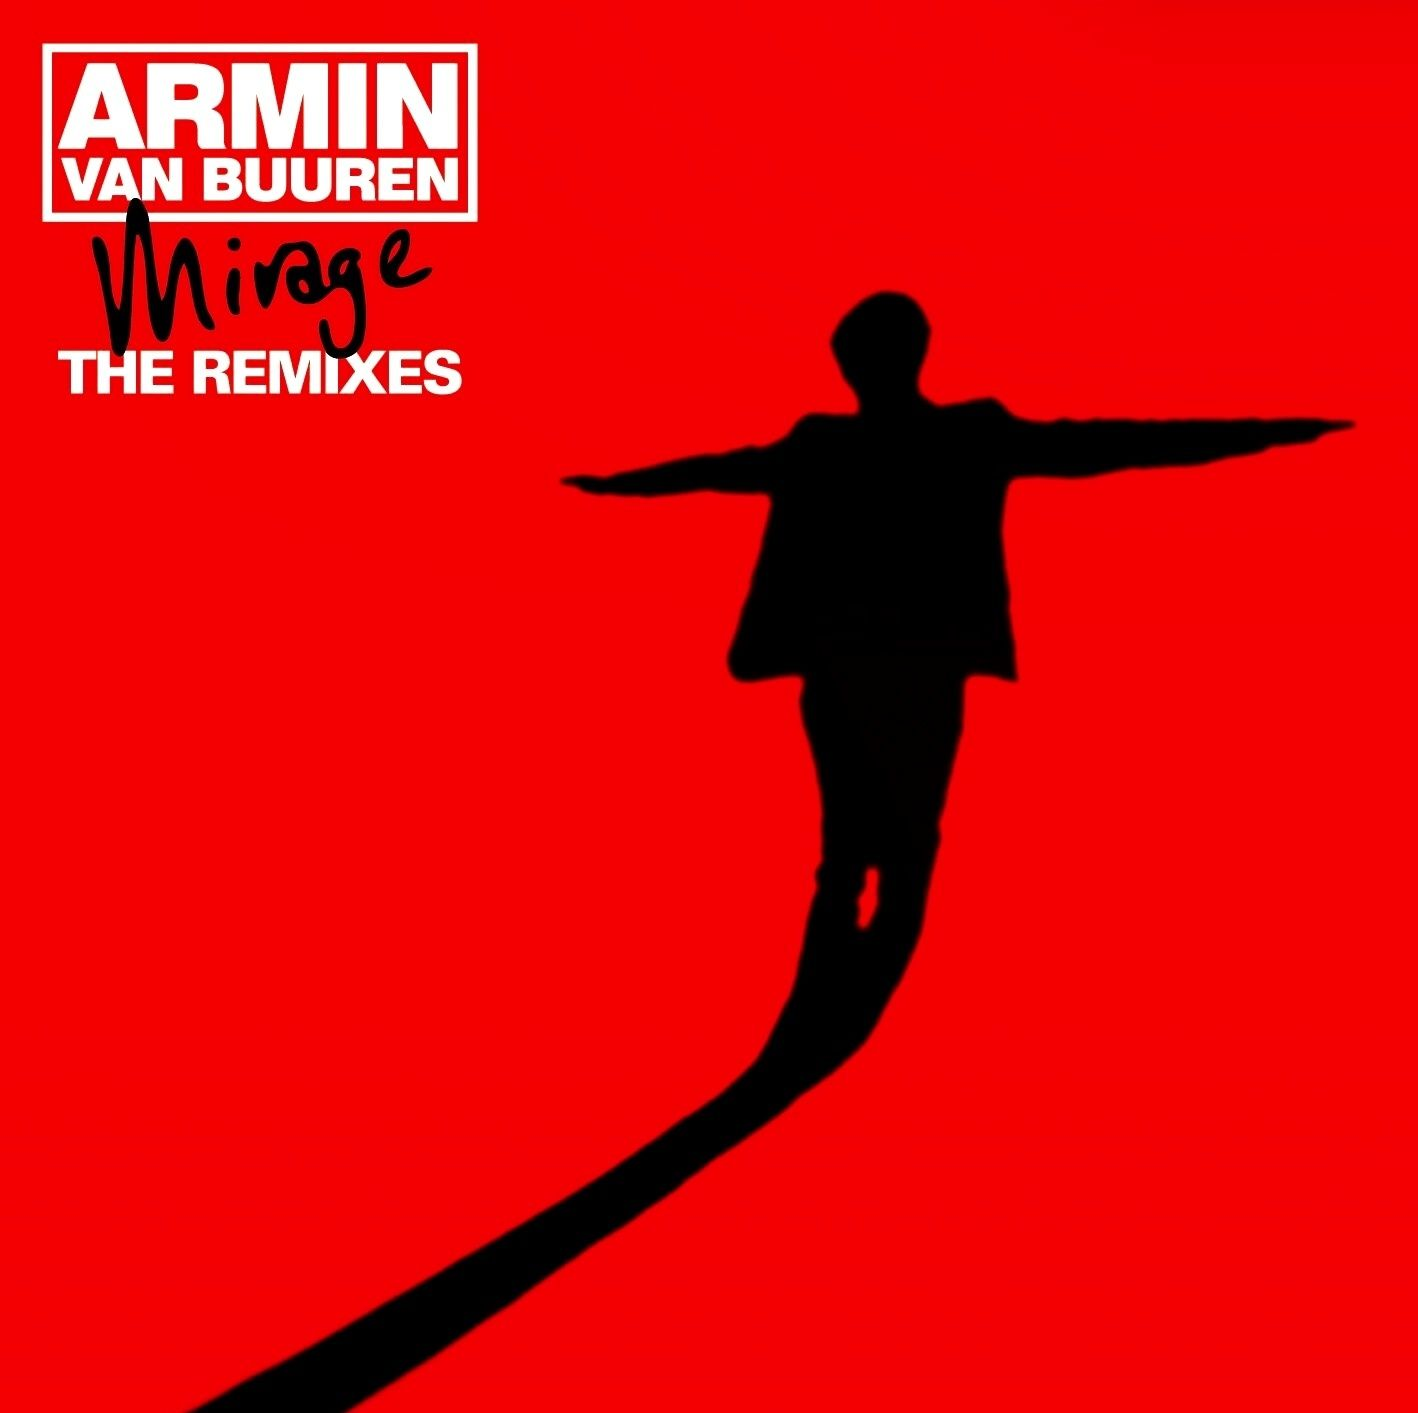 Armin Van Buuren - Mirage: The Remixes album cover